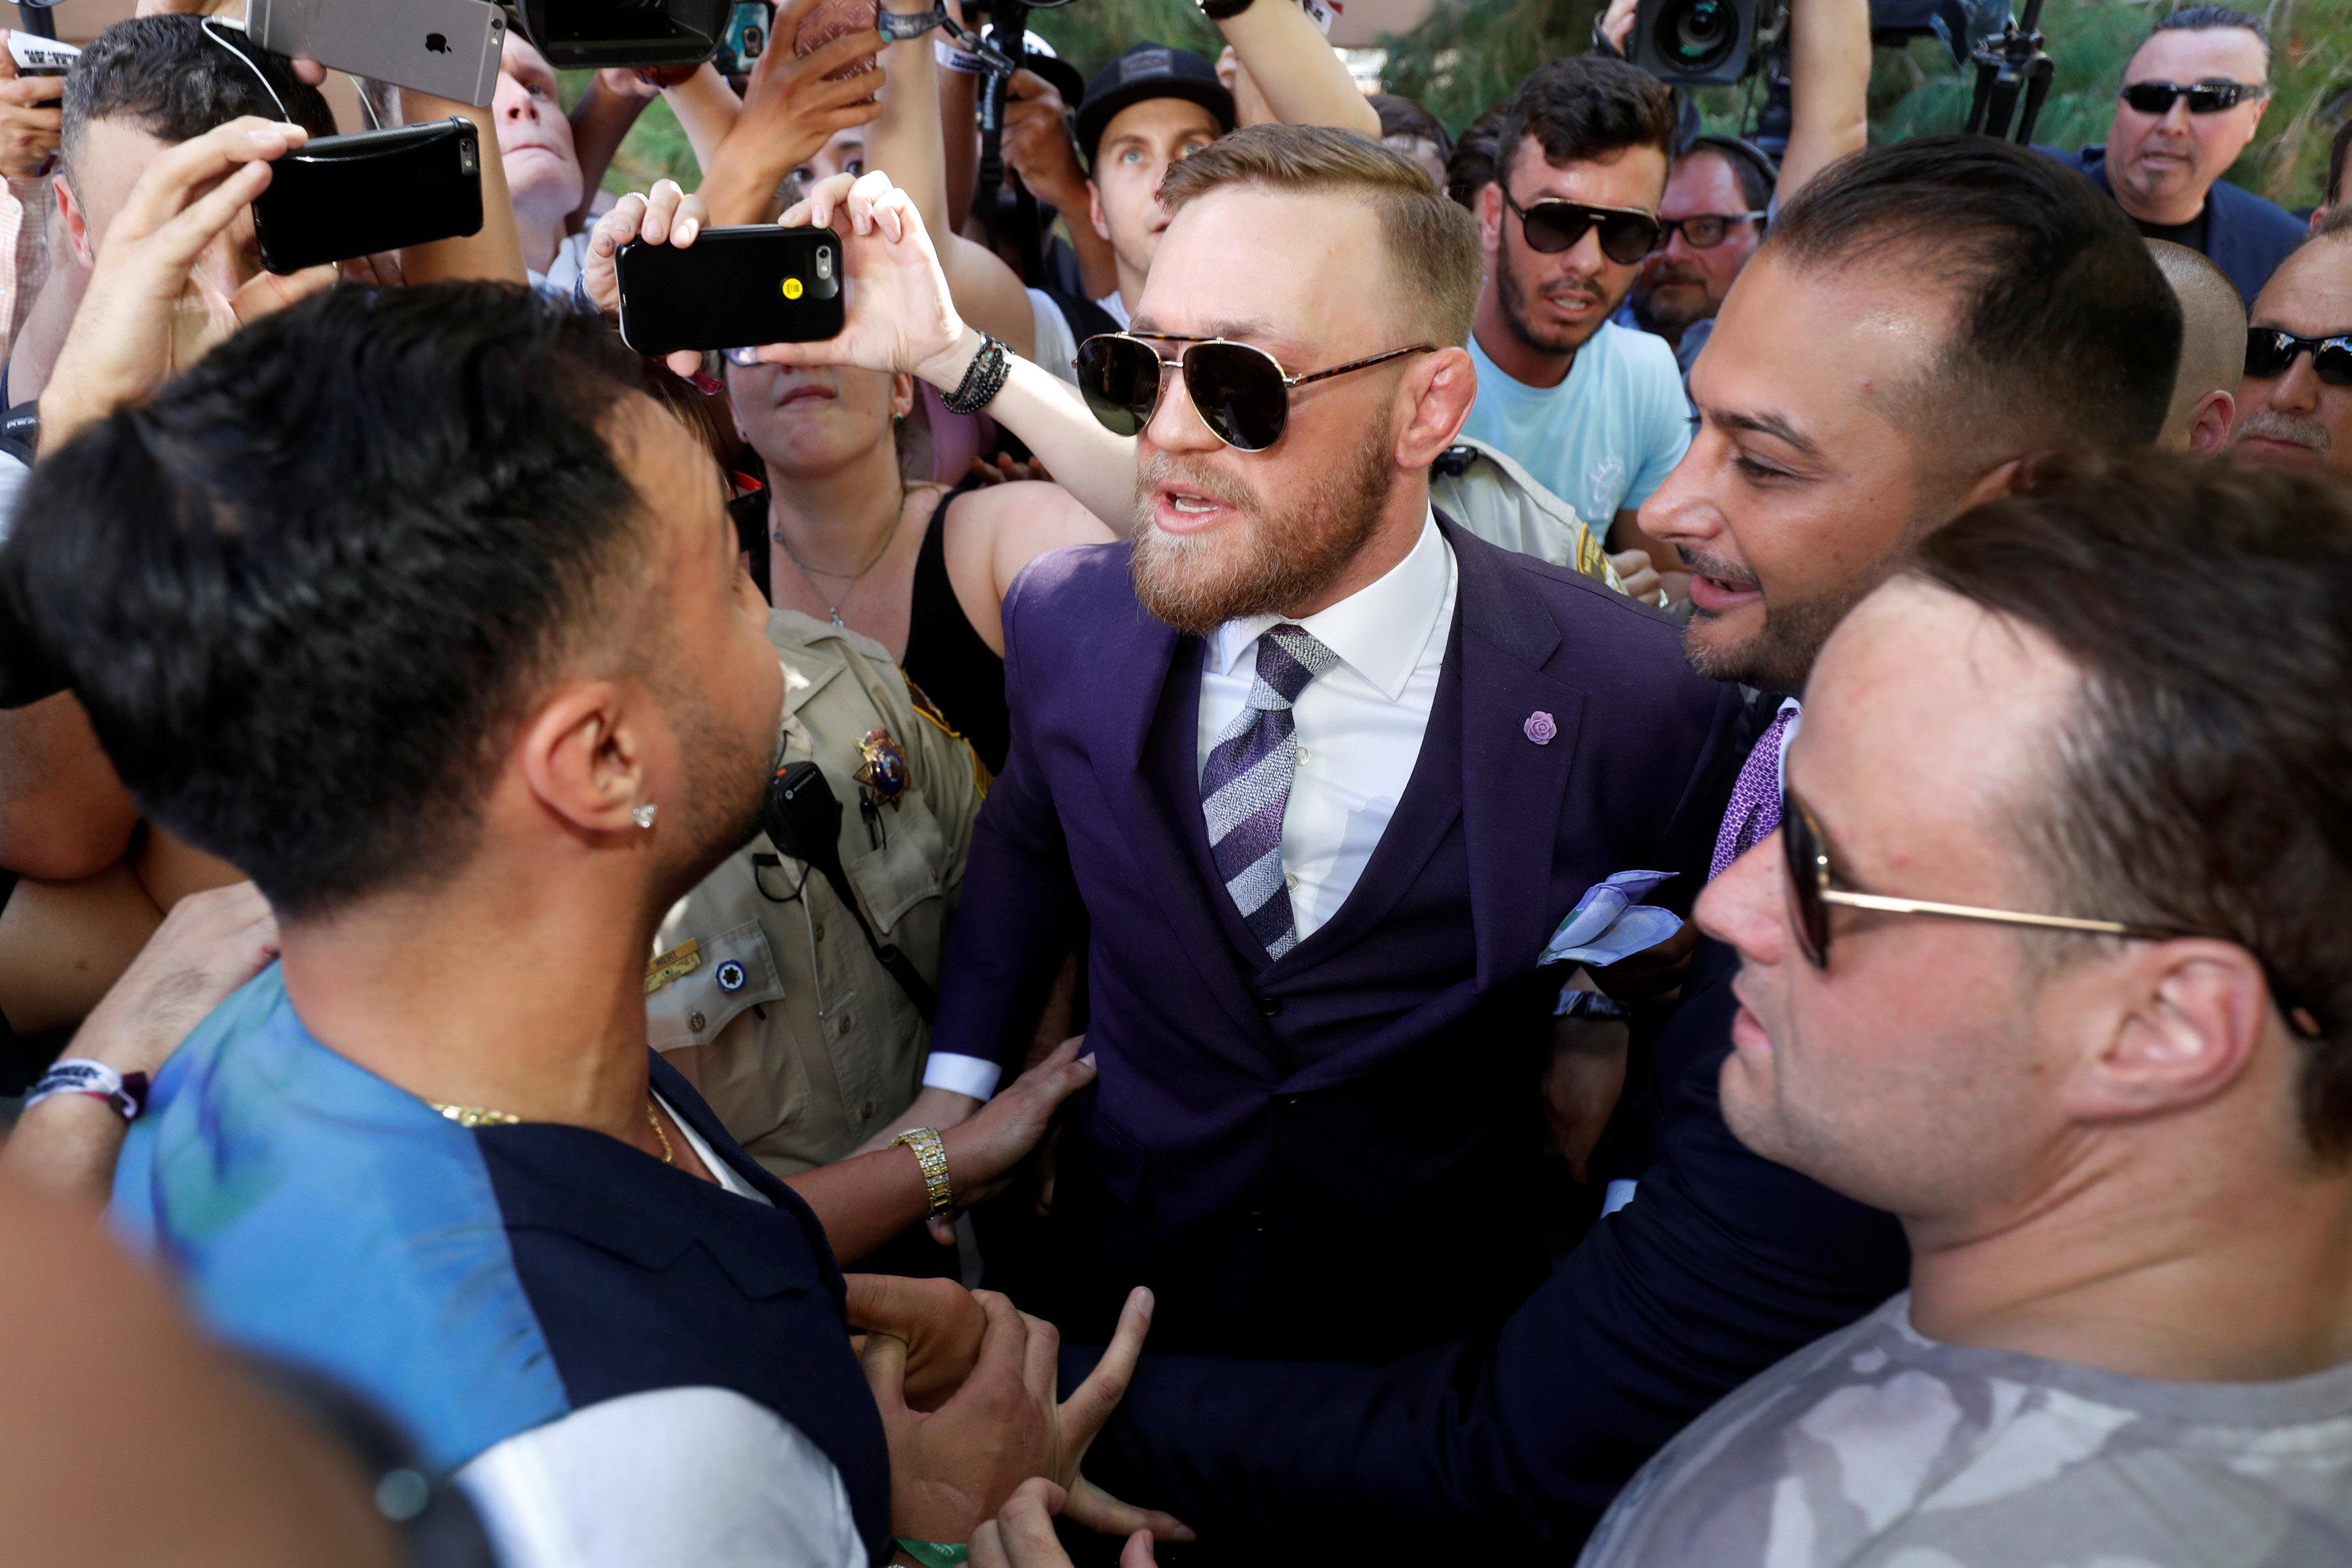 Sources: Conor McGregor planning on UFC return, not Paulie Malignaggi fight